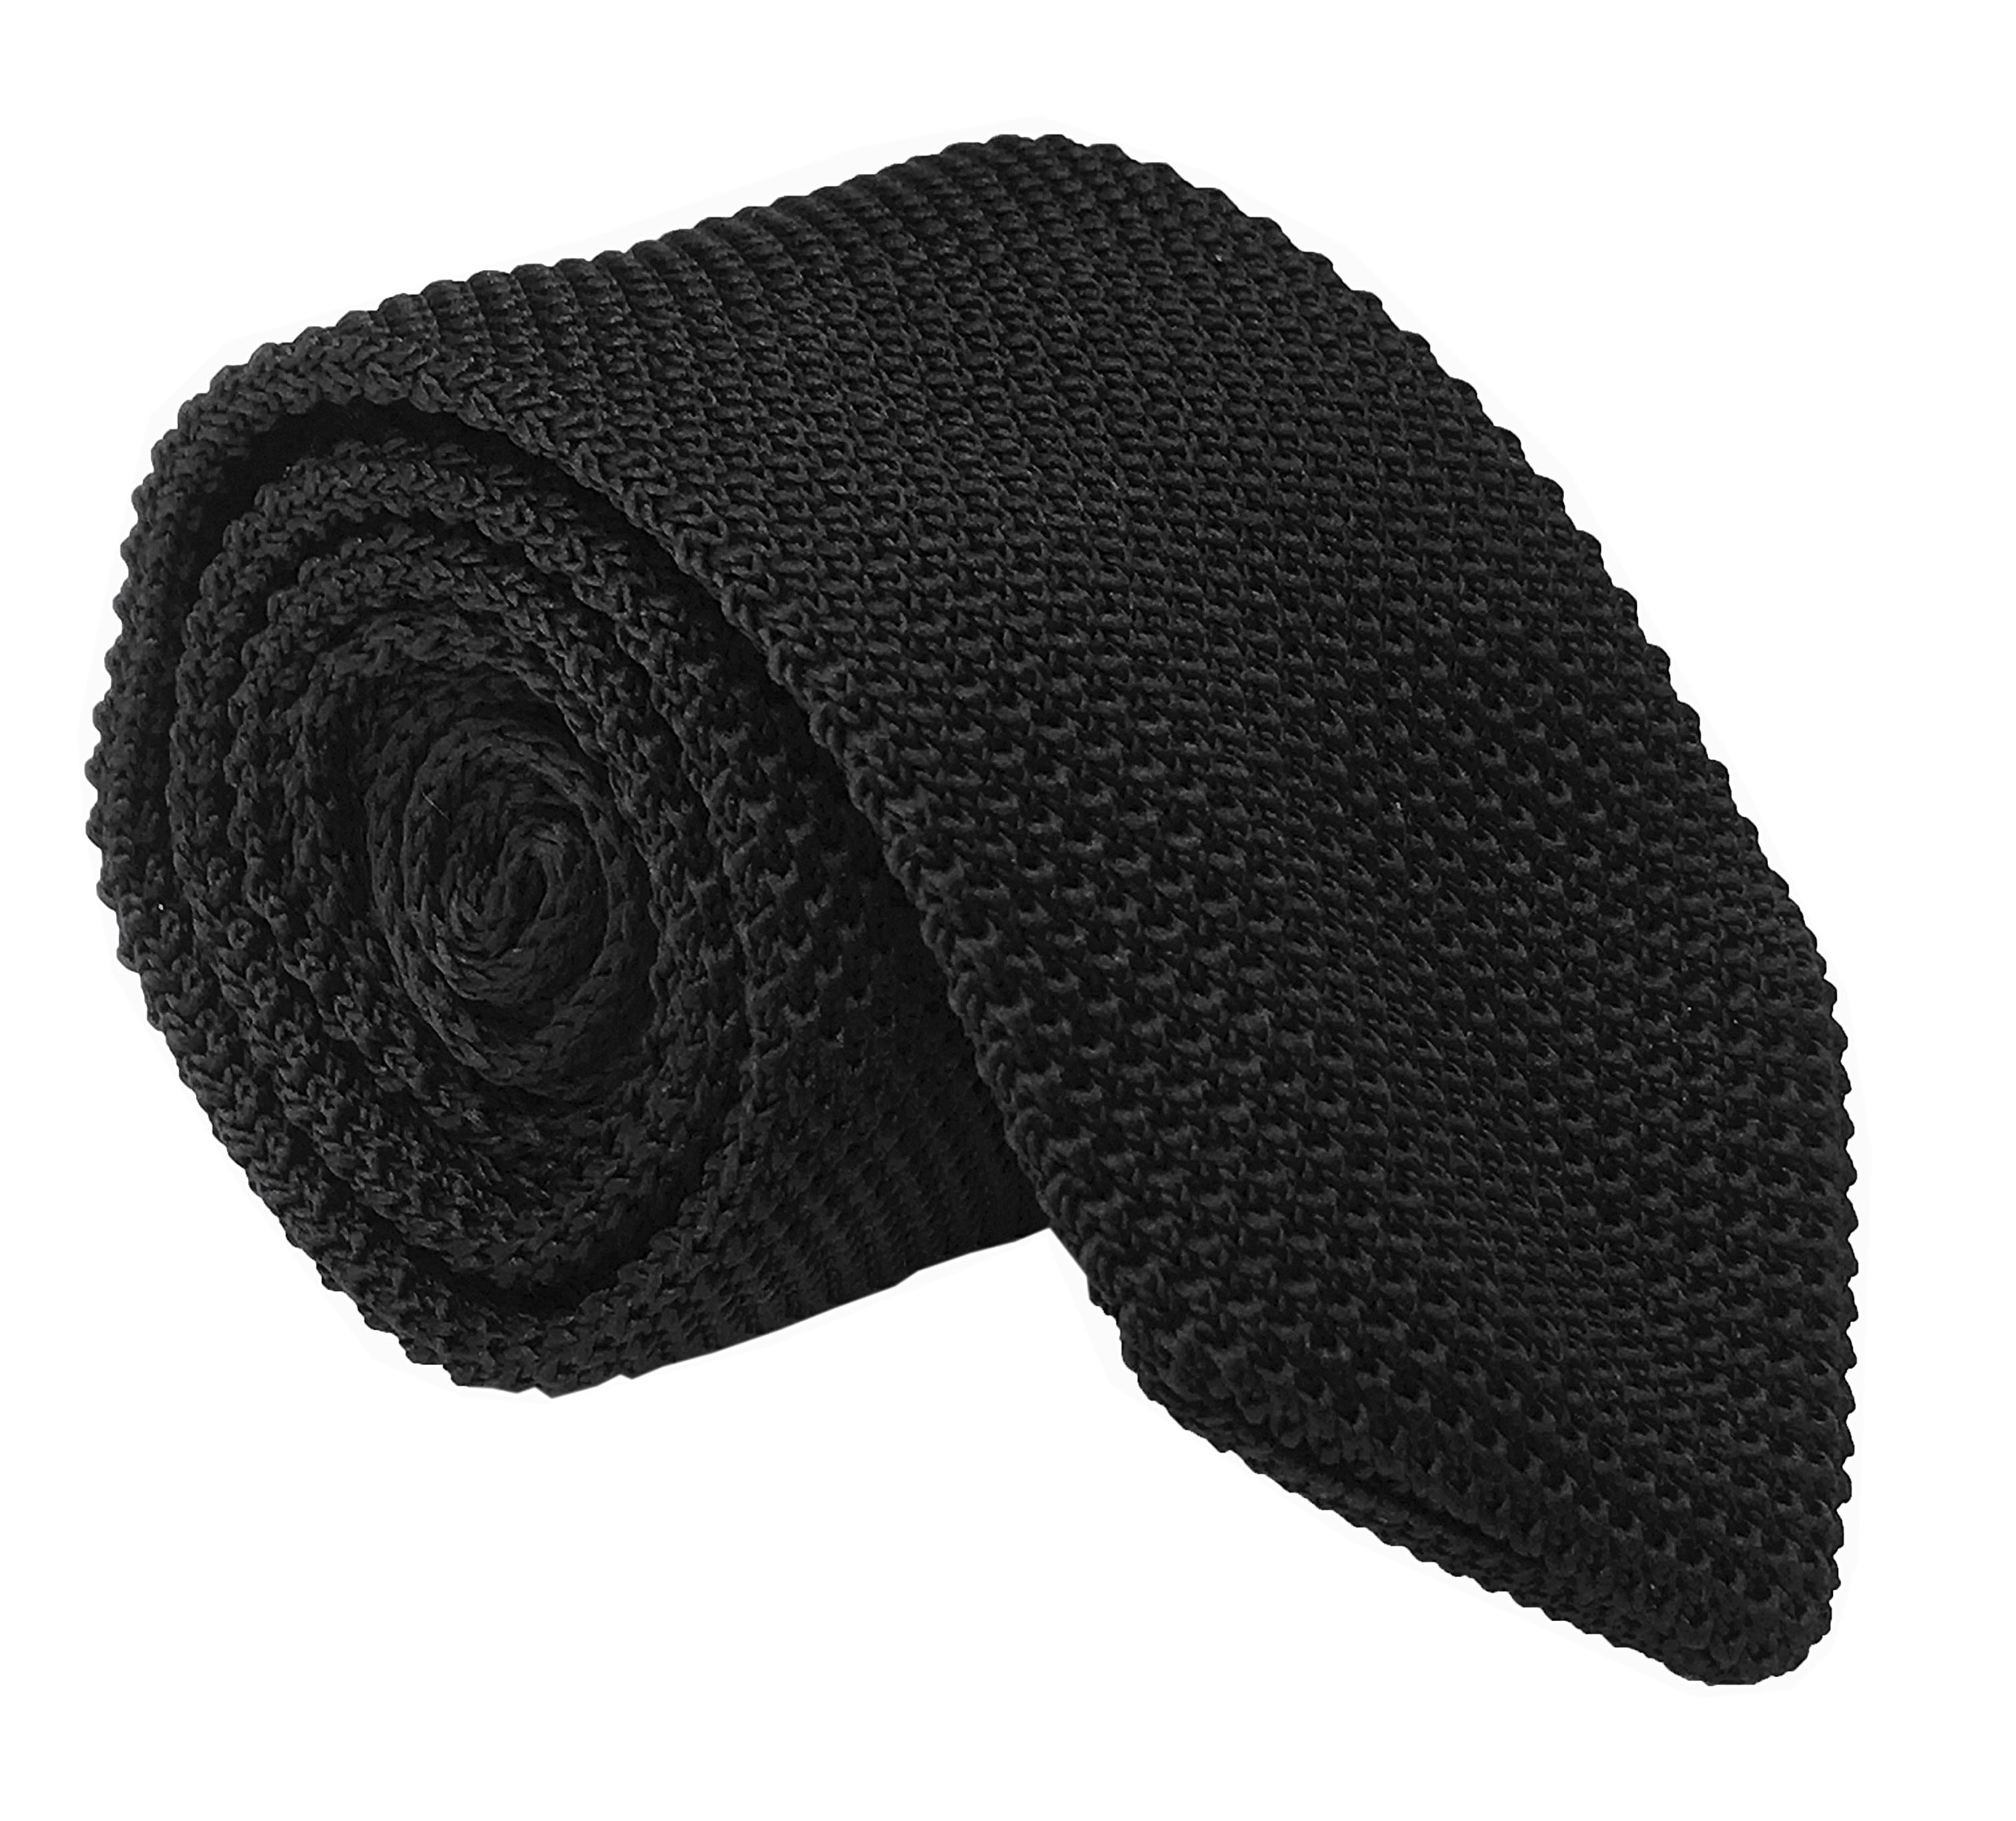 Men Solid Color Black Knitted Neck Tie Narrow Necktie Accessory Gift for Husband